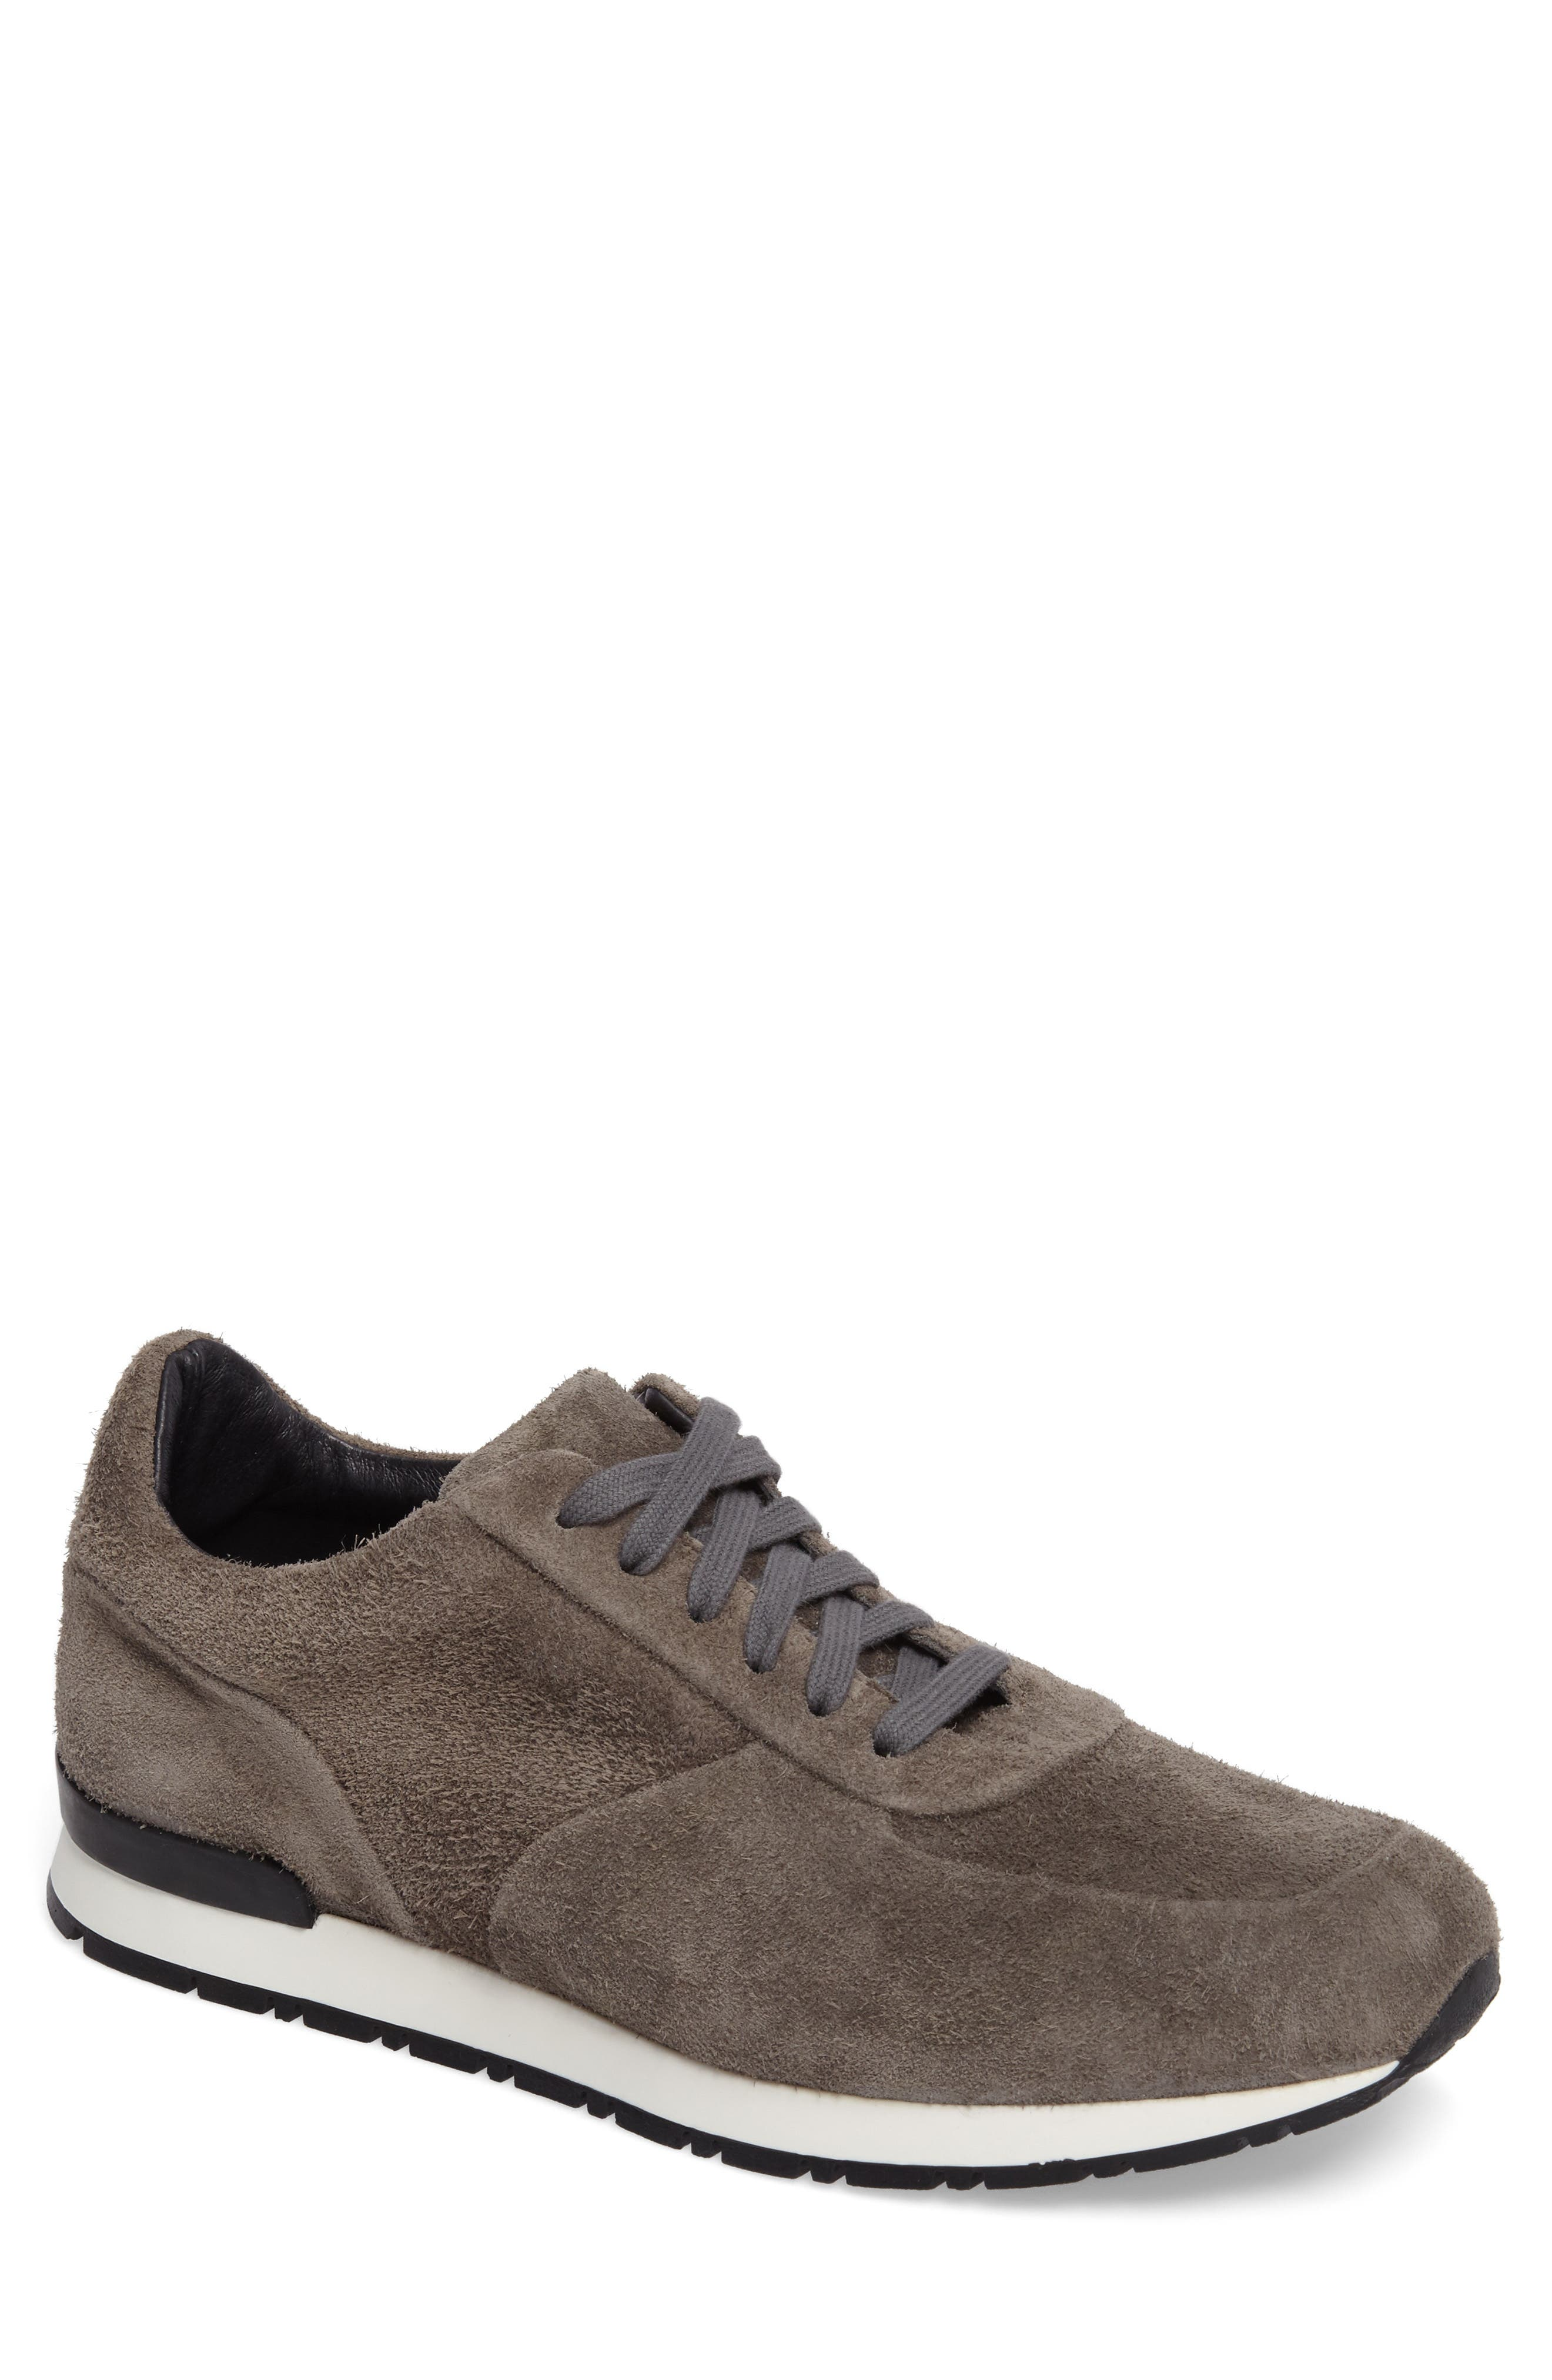 Hairy Sneaker,                         Main,                         color, 064